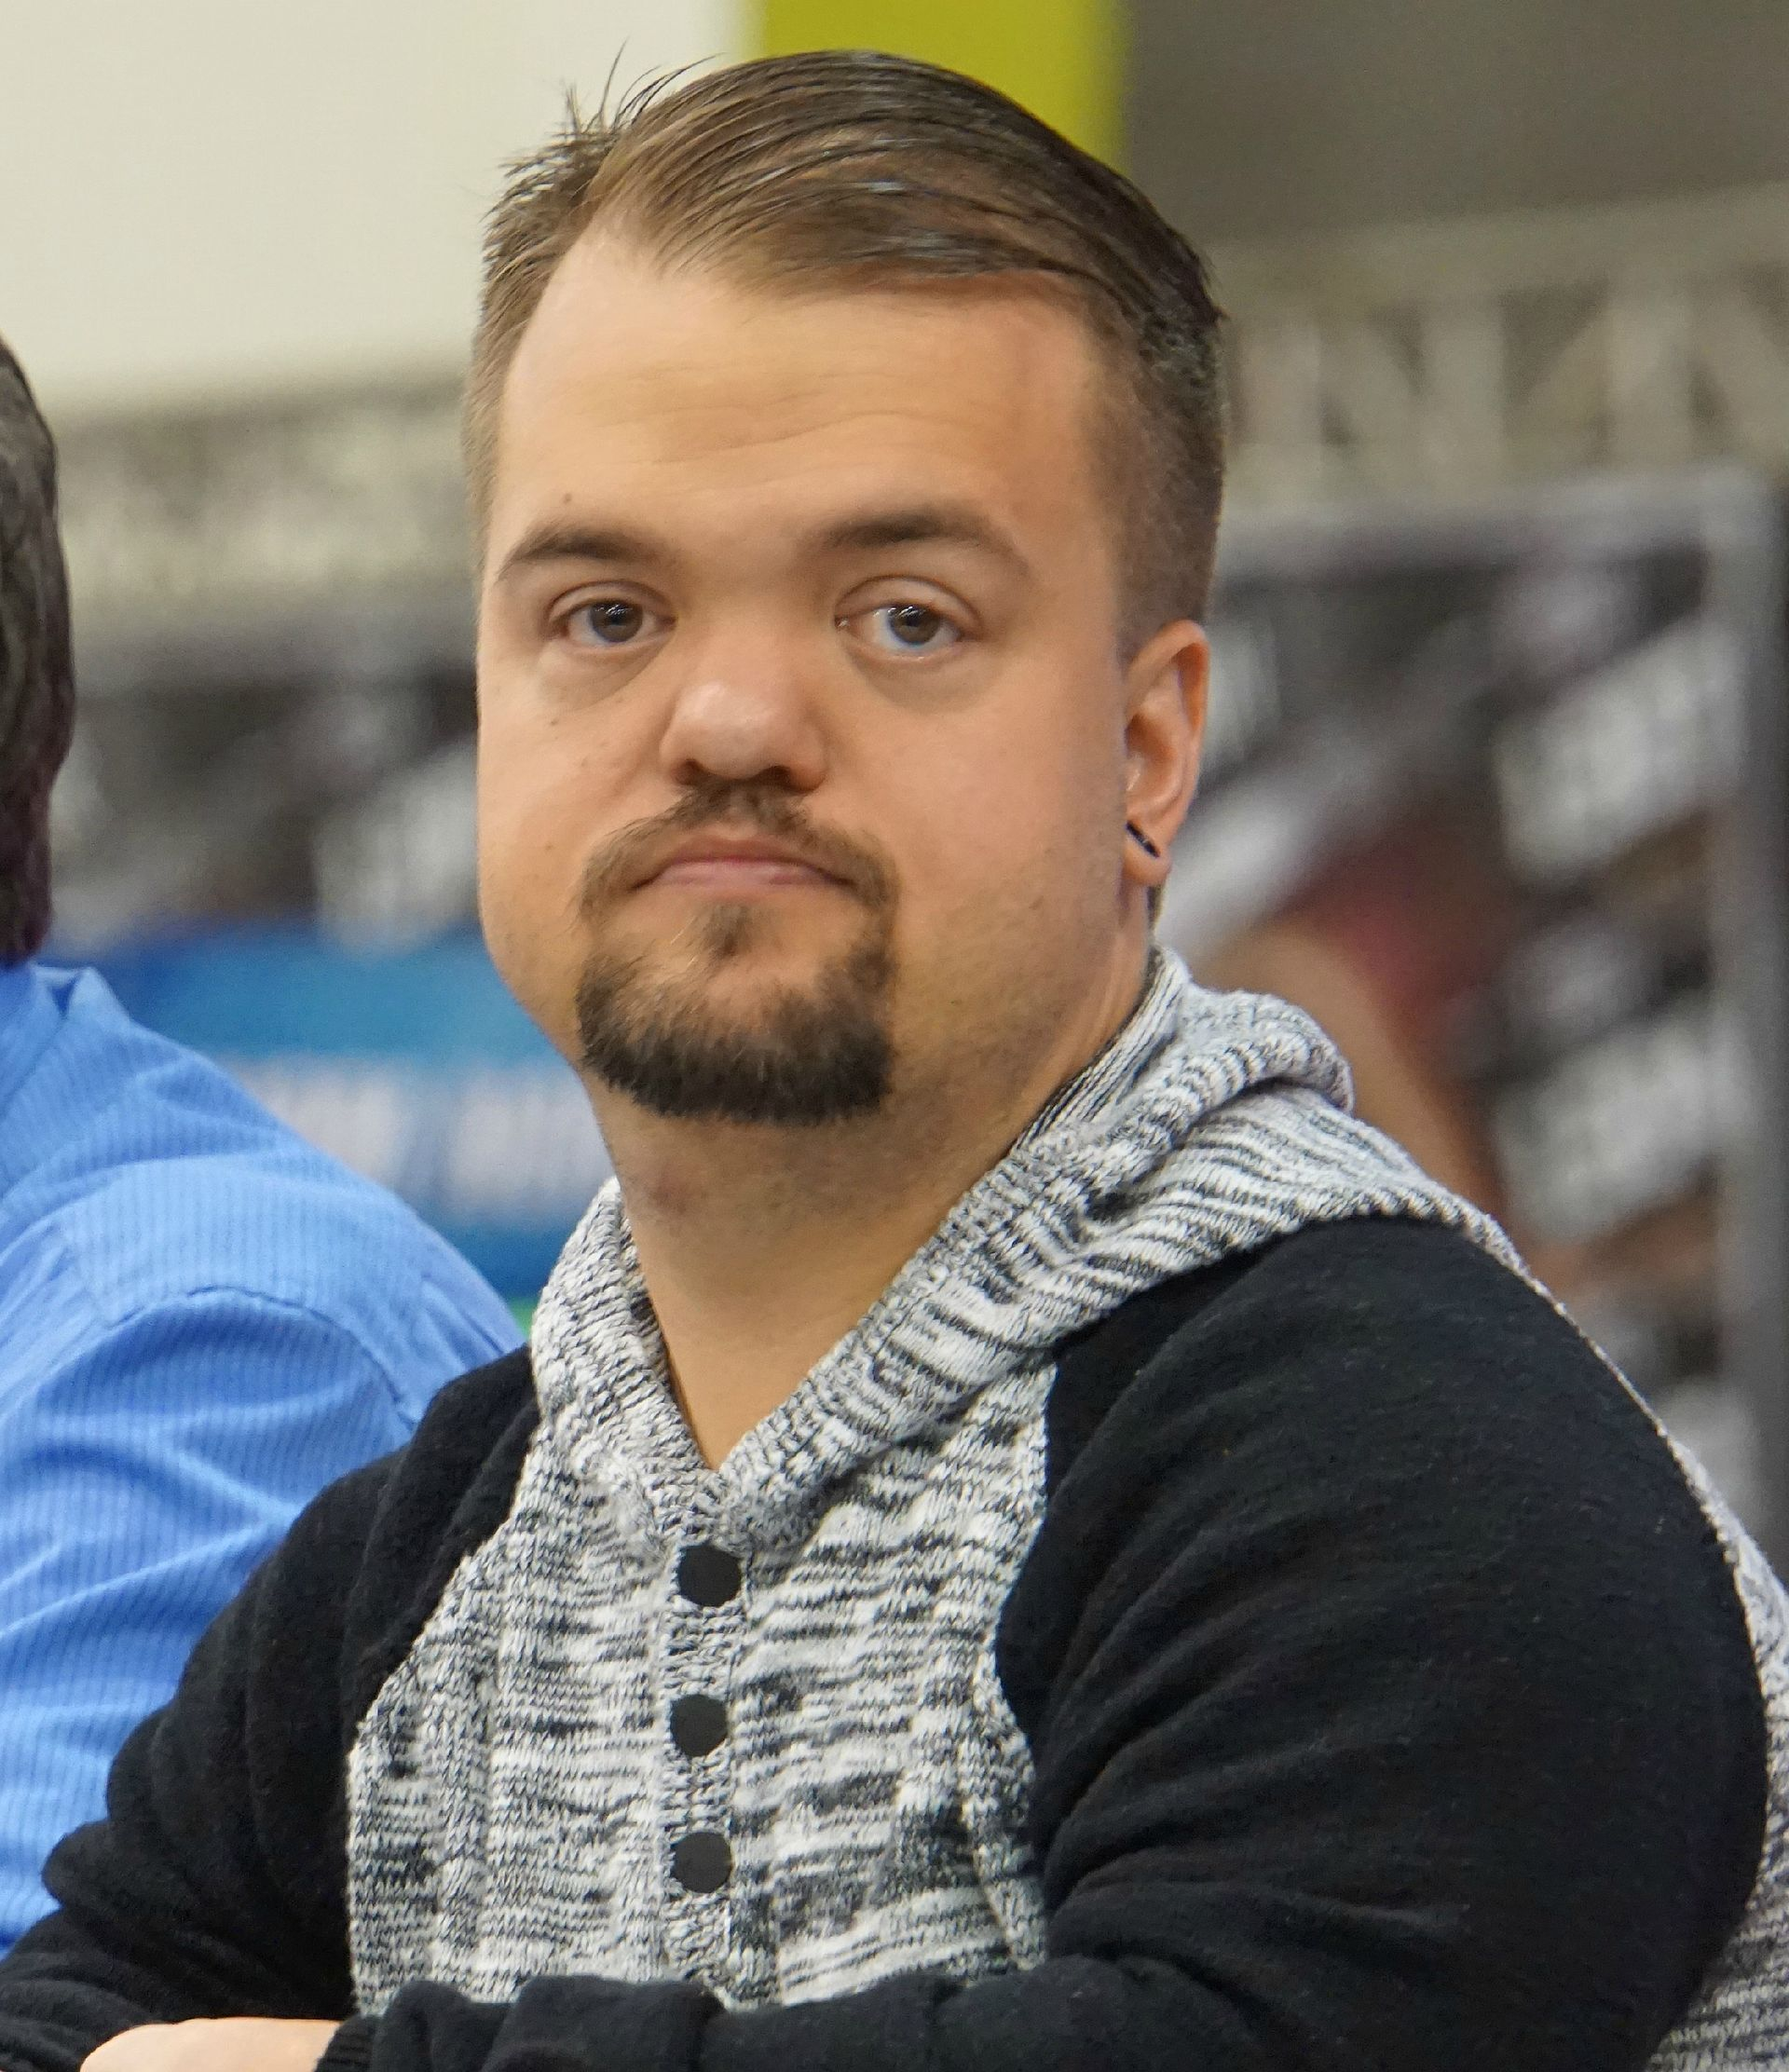 Hornswoggle - Simple English Wikipedia, the free encyclopedia Hornswoggle